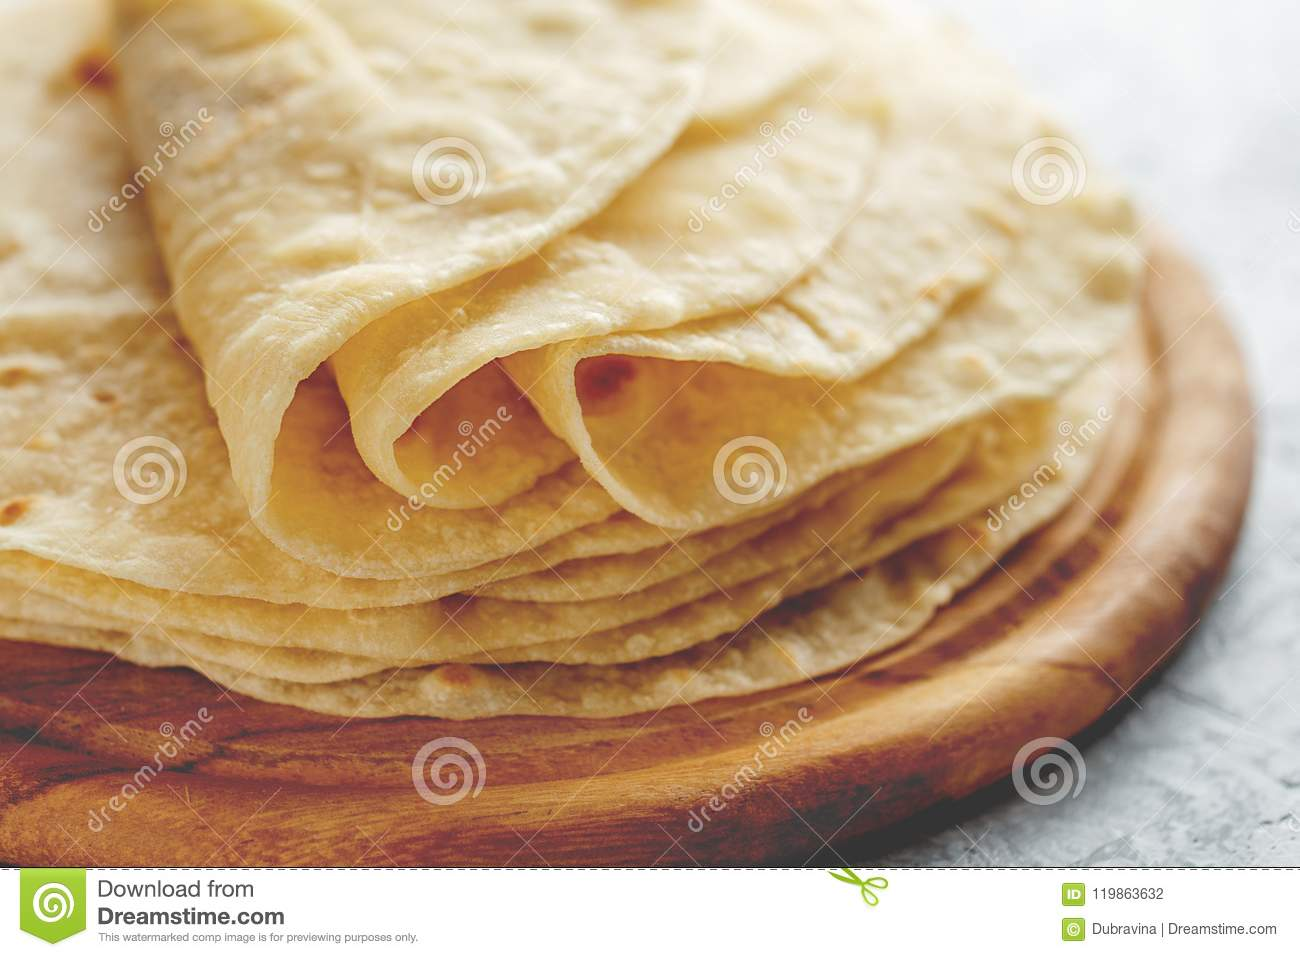 Stack of homemade wheat flour tortilla wraps on wooden cutting board.